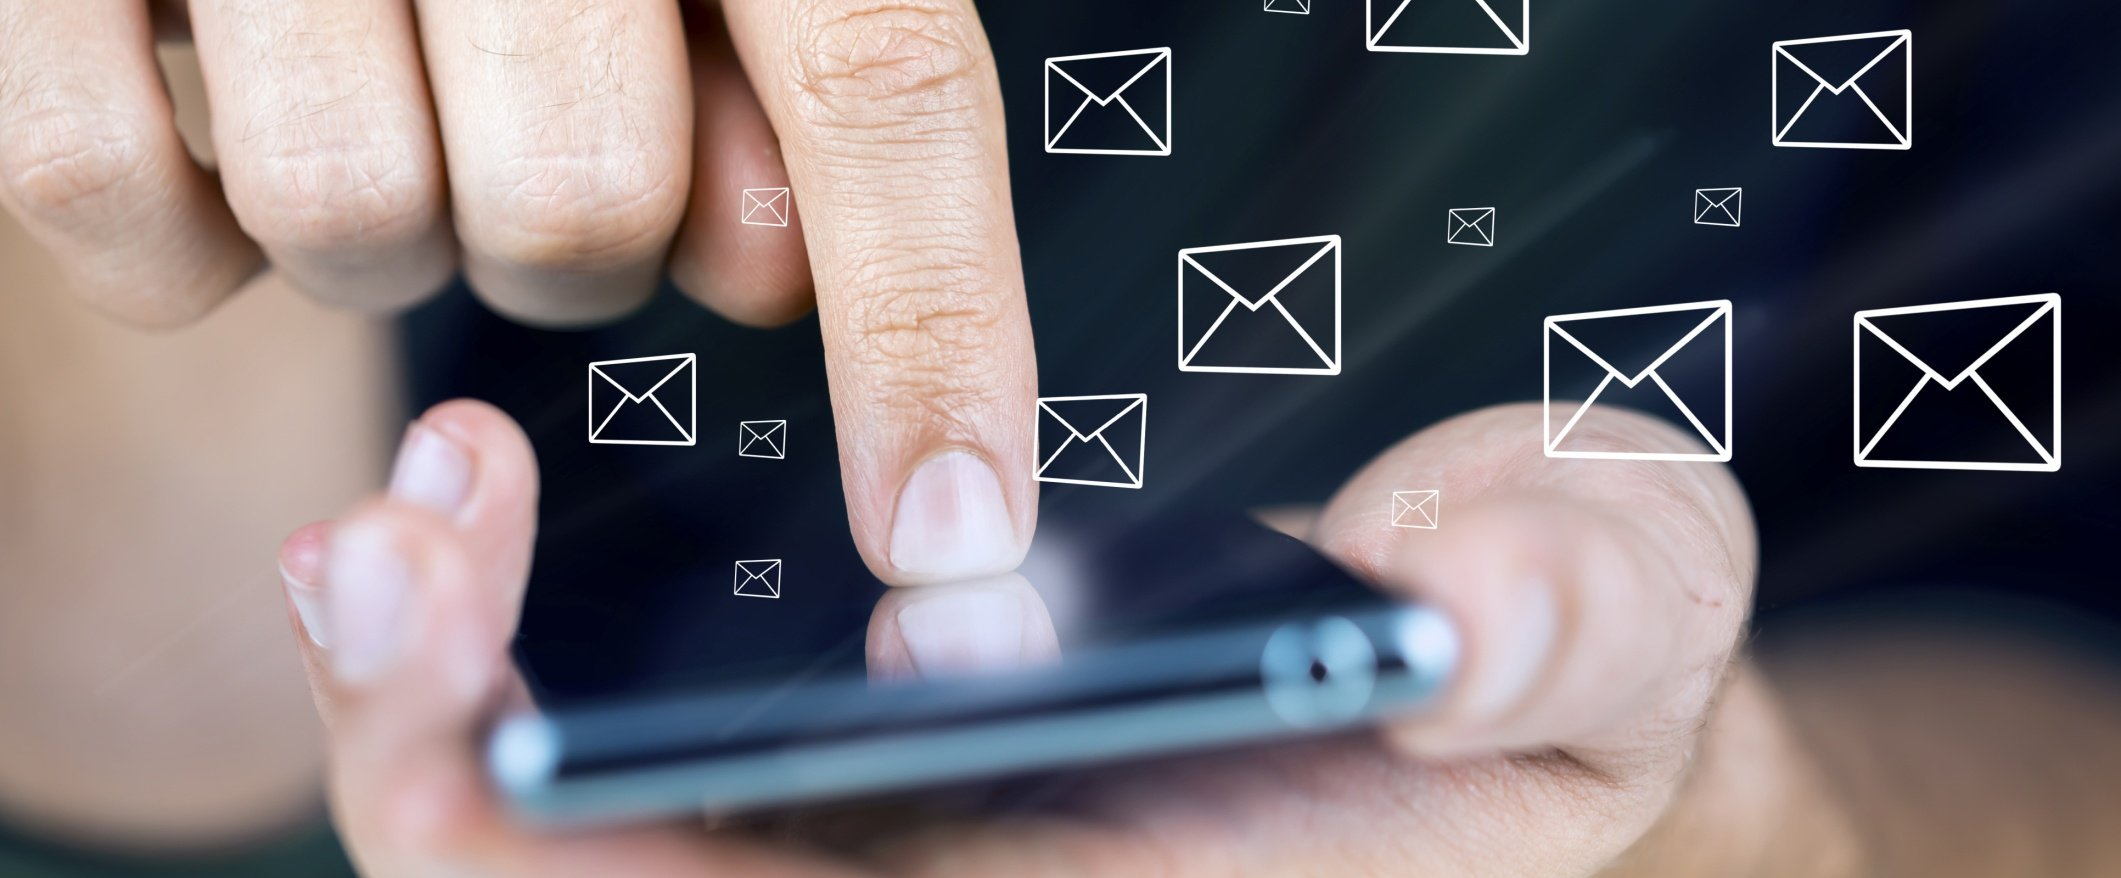 Sales Reps: Stop Sending Pointless Emails